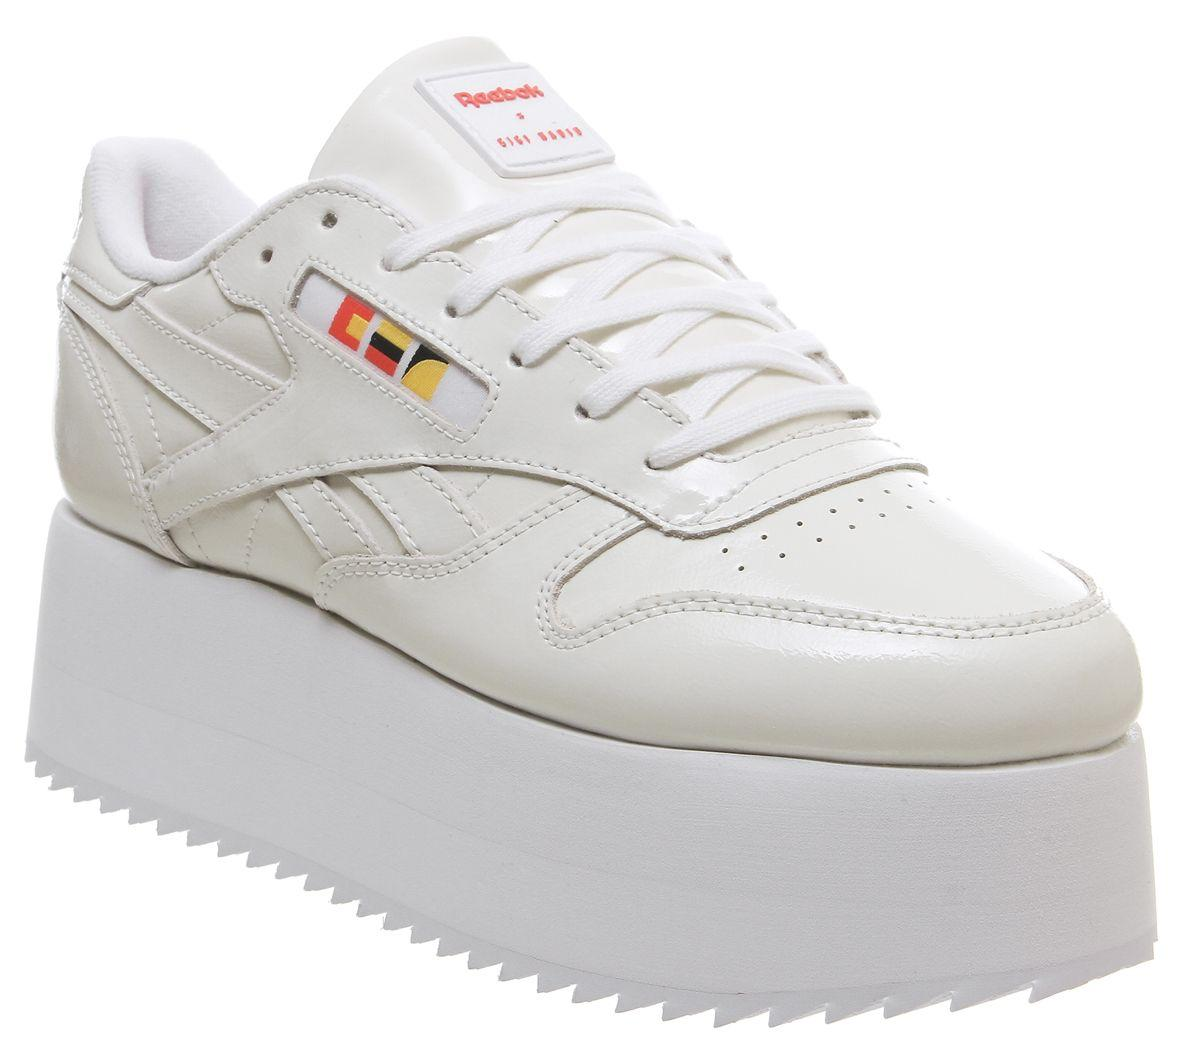 6fc7b052347 Lyst - Reebok Classic Leather Bold in White